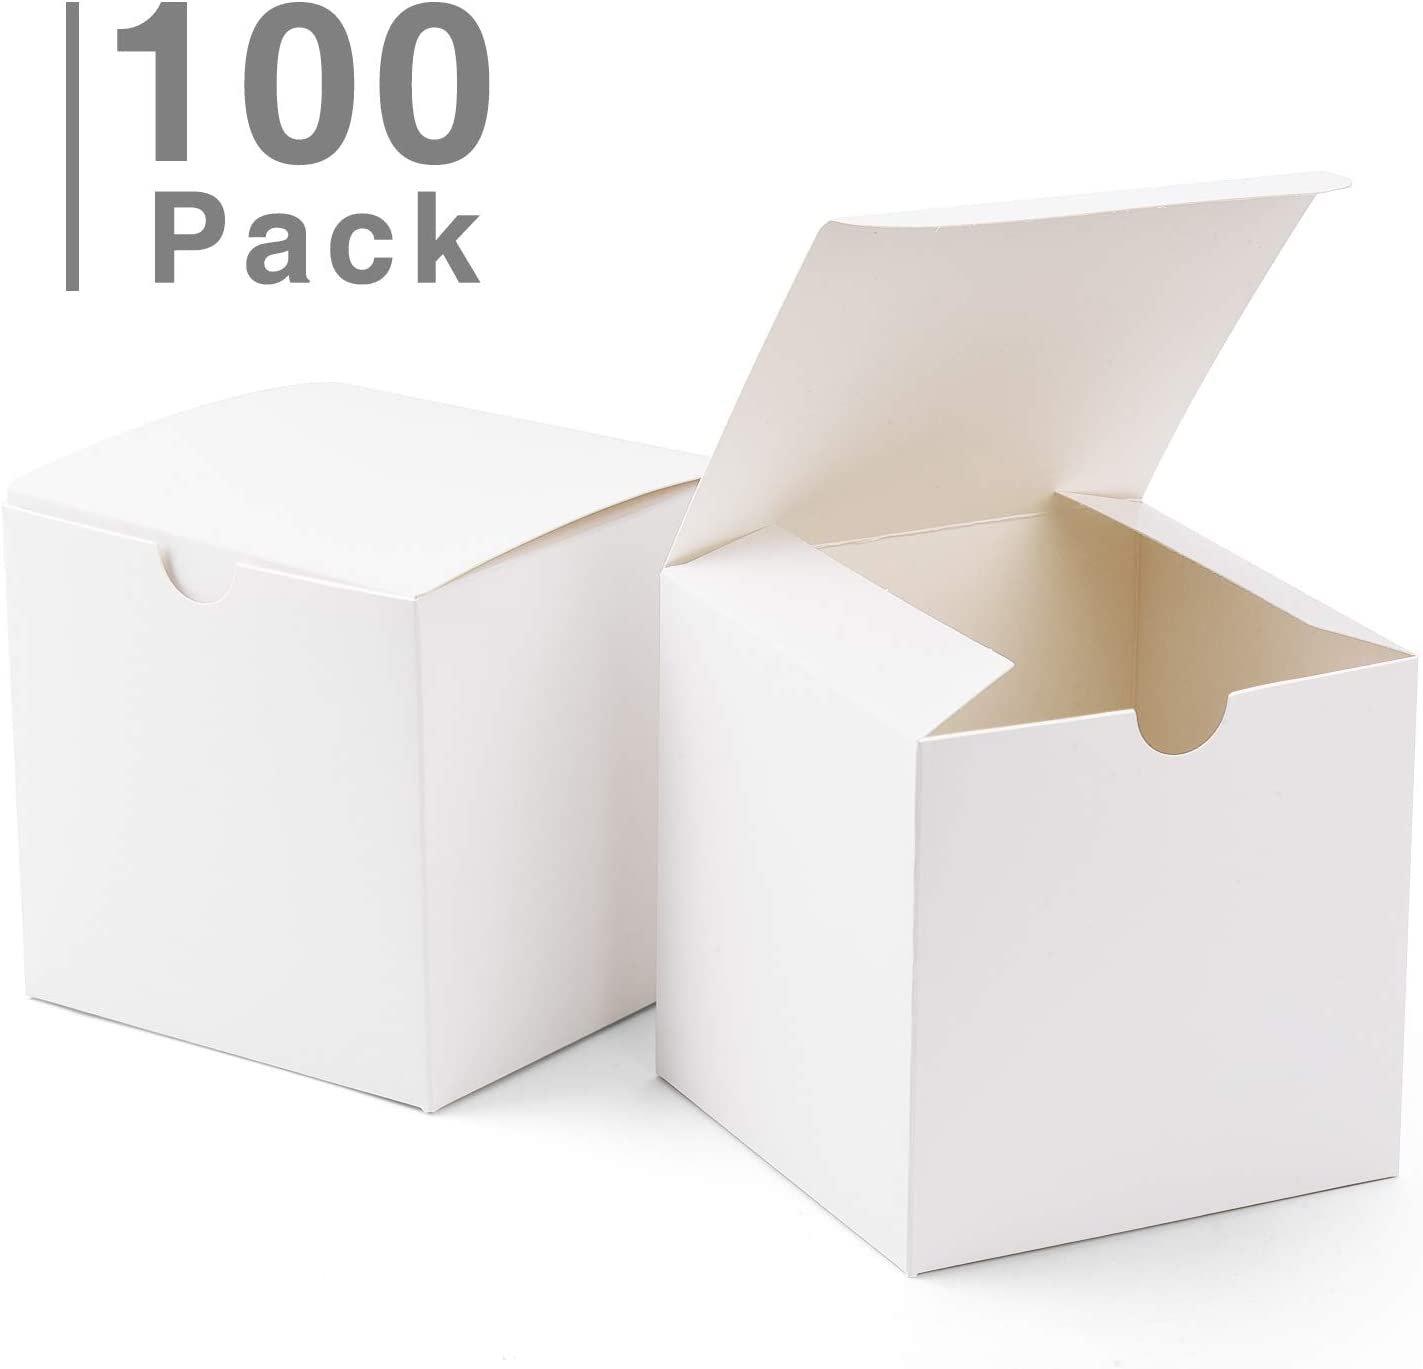 Cupcake Boxes ValBox 4x4x4 White Gift Boxes 25PCS Kraft Paper Boxes with Lids for Gifts Crafting Cube Easy Assemble Boxes for Party Favor